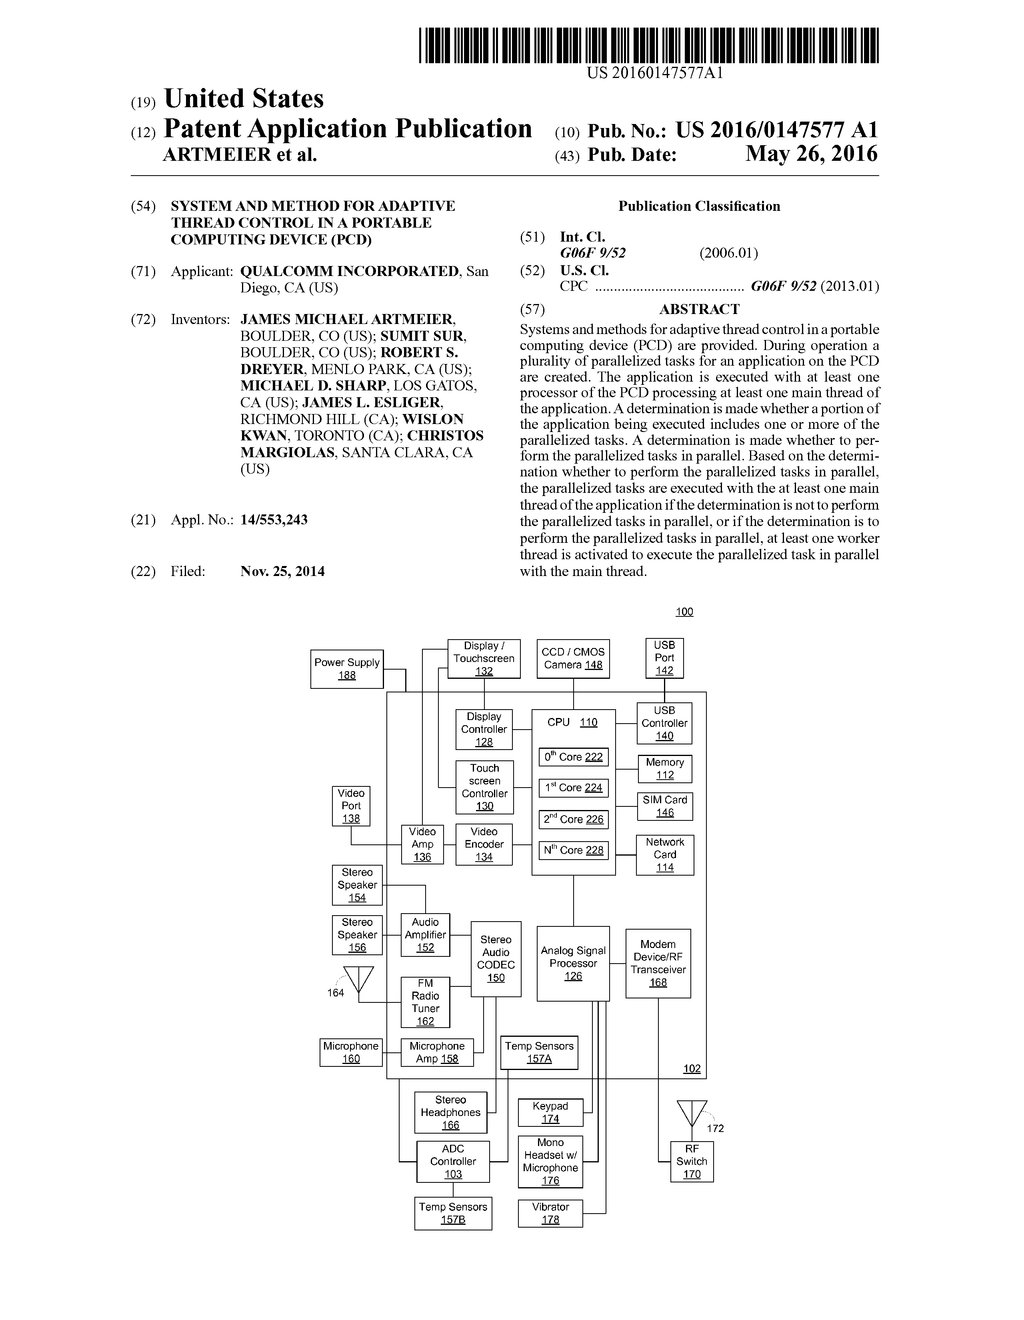 SYSTEM AND METHOD FOR ADAPTIVE THREAD CONTROL IN A PORTABLE ...